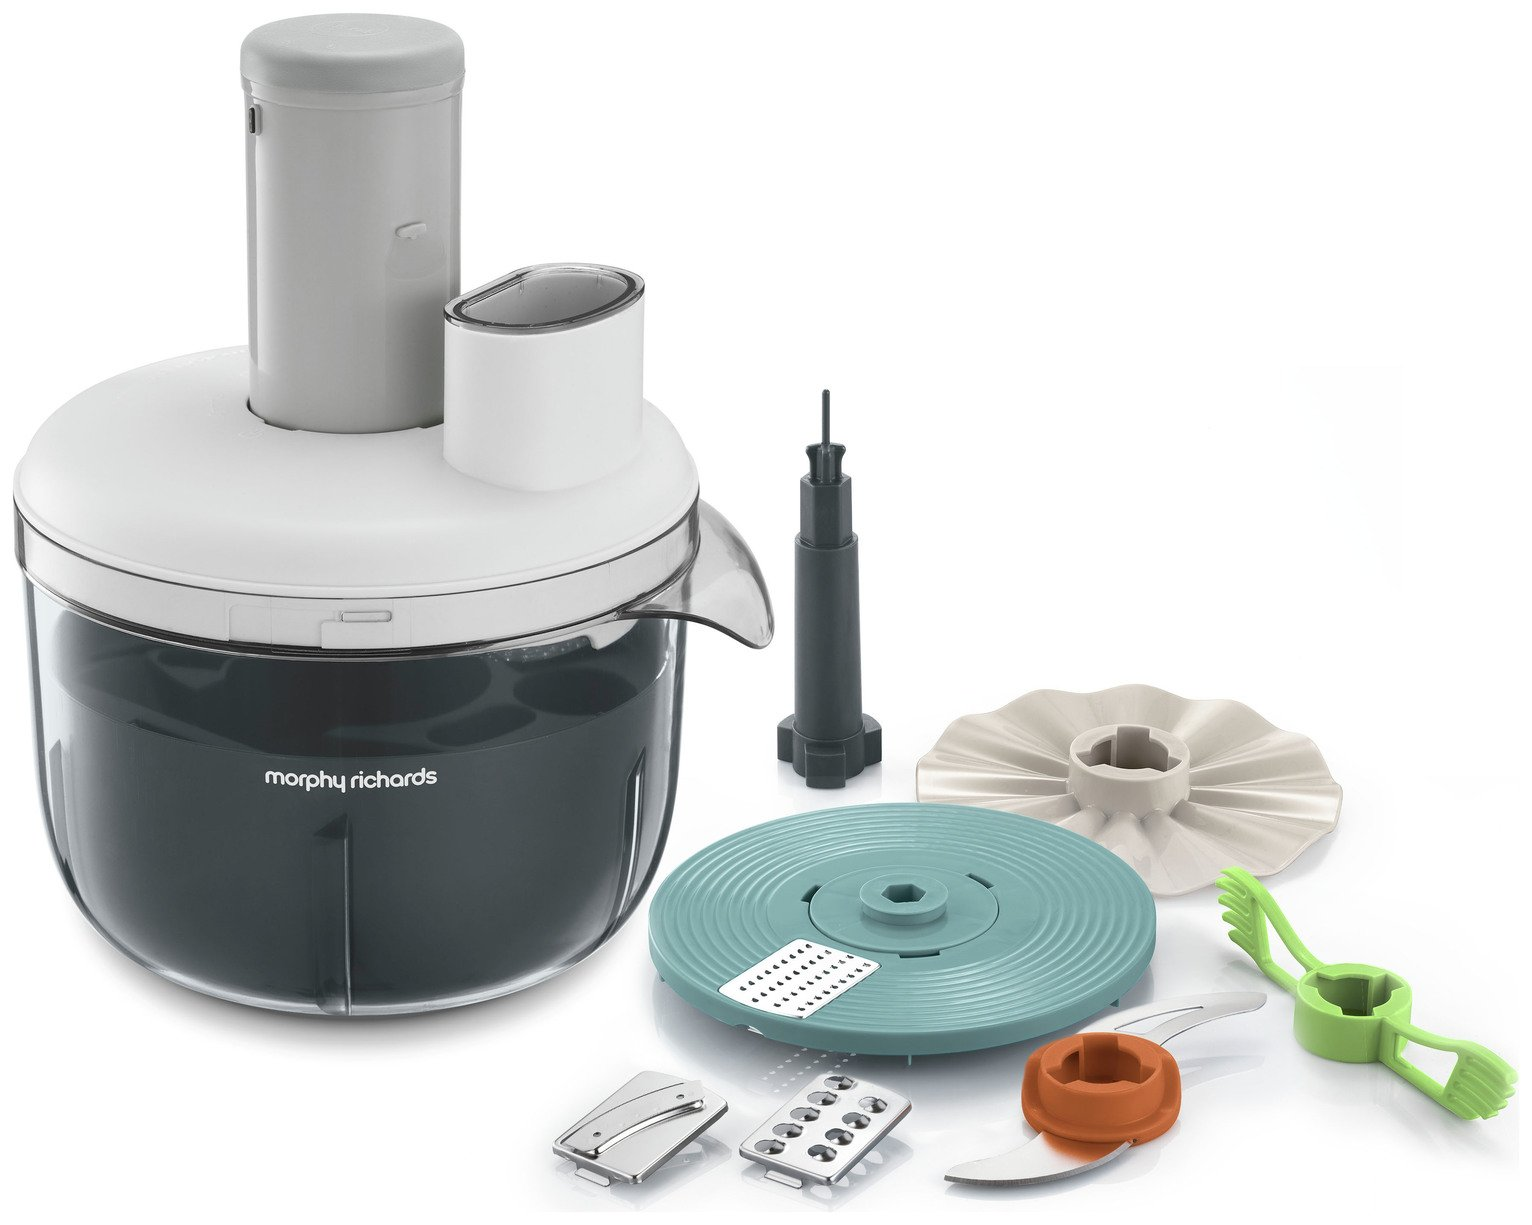 Morphy Richards 401012 Prepstar Food Processor - White